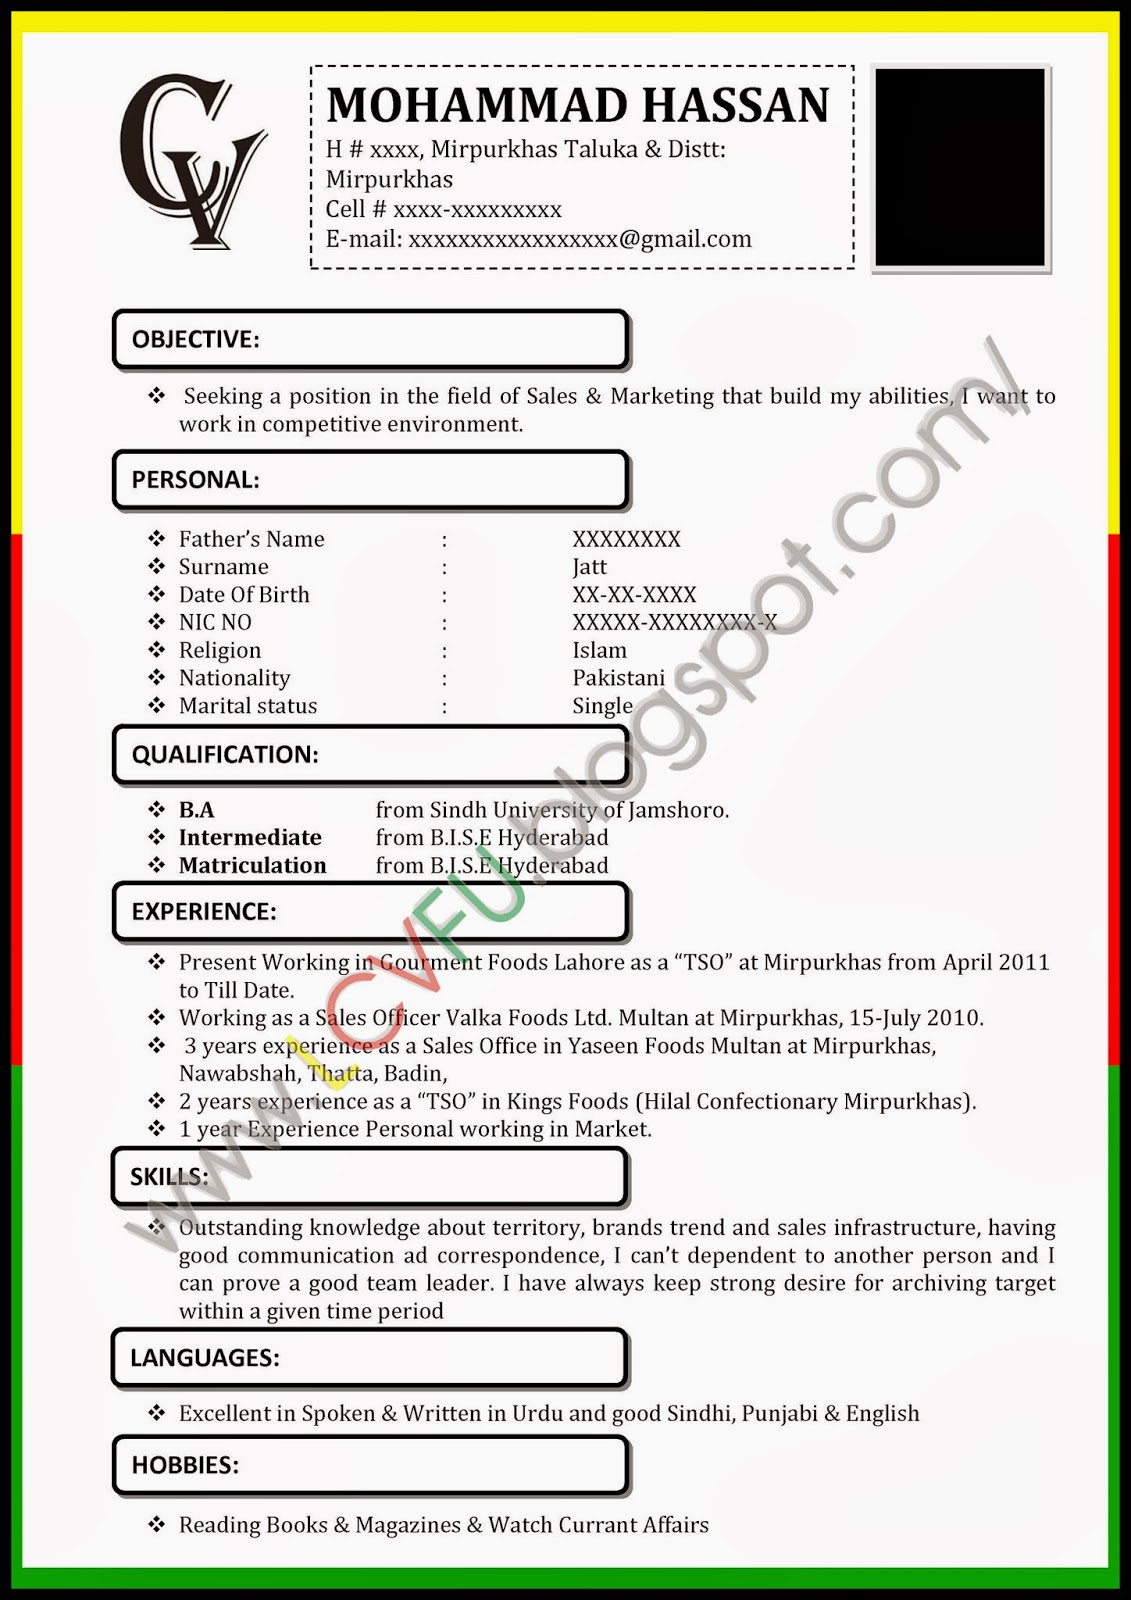 latest cv format in ms word service resume latest cv format in ms word latest cv format 2017 in in ms word